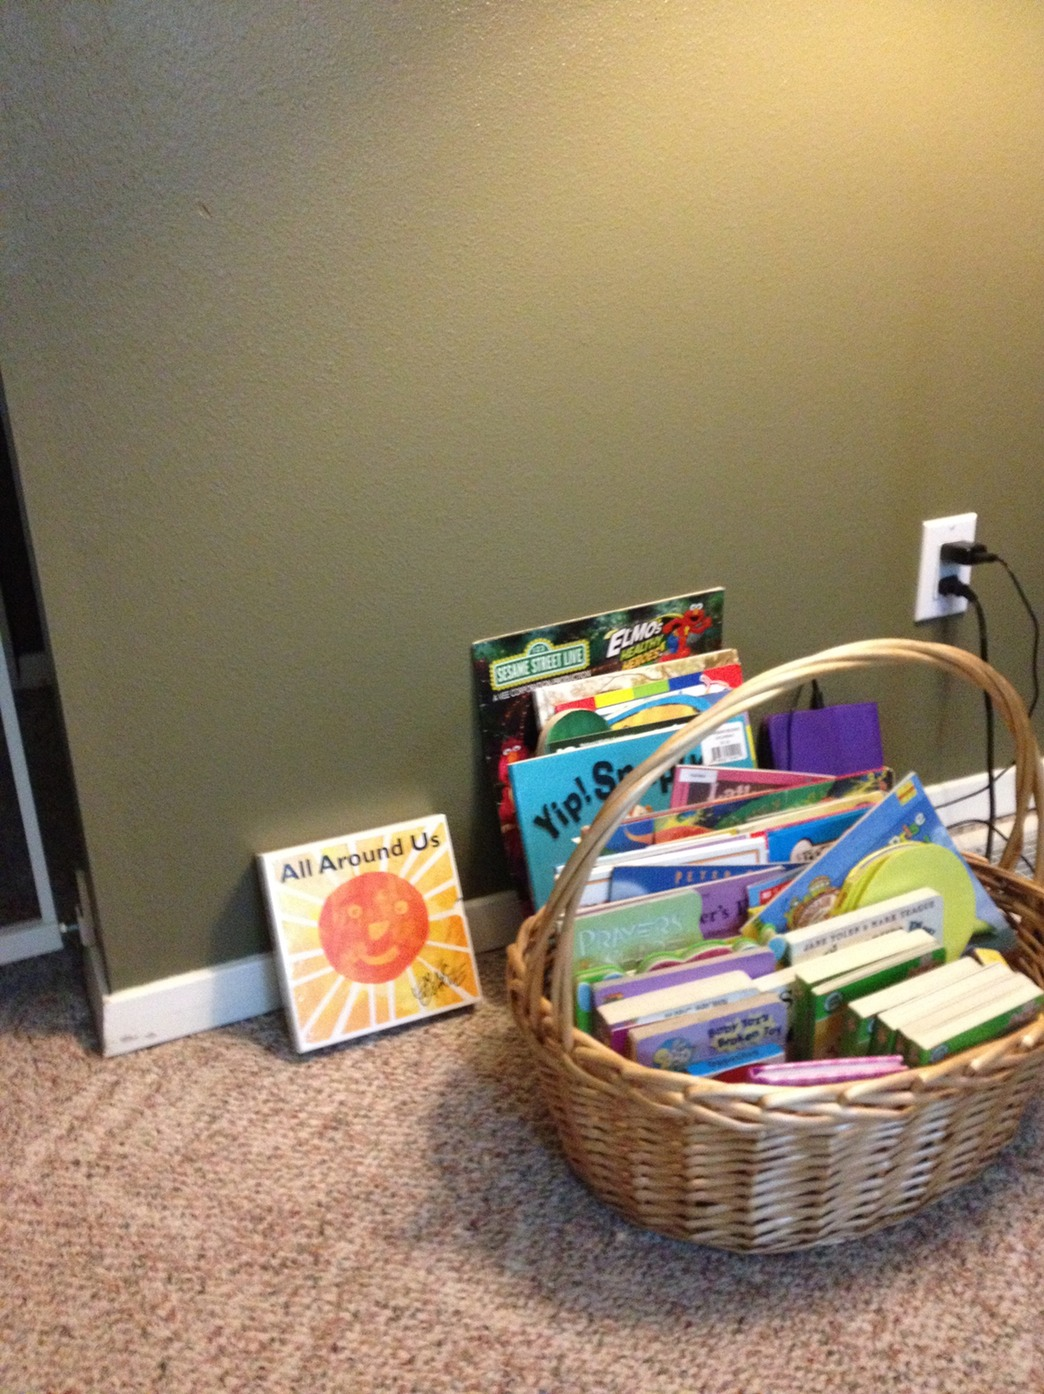 small book basket but children can bring books from other